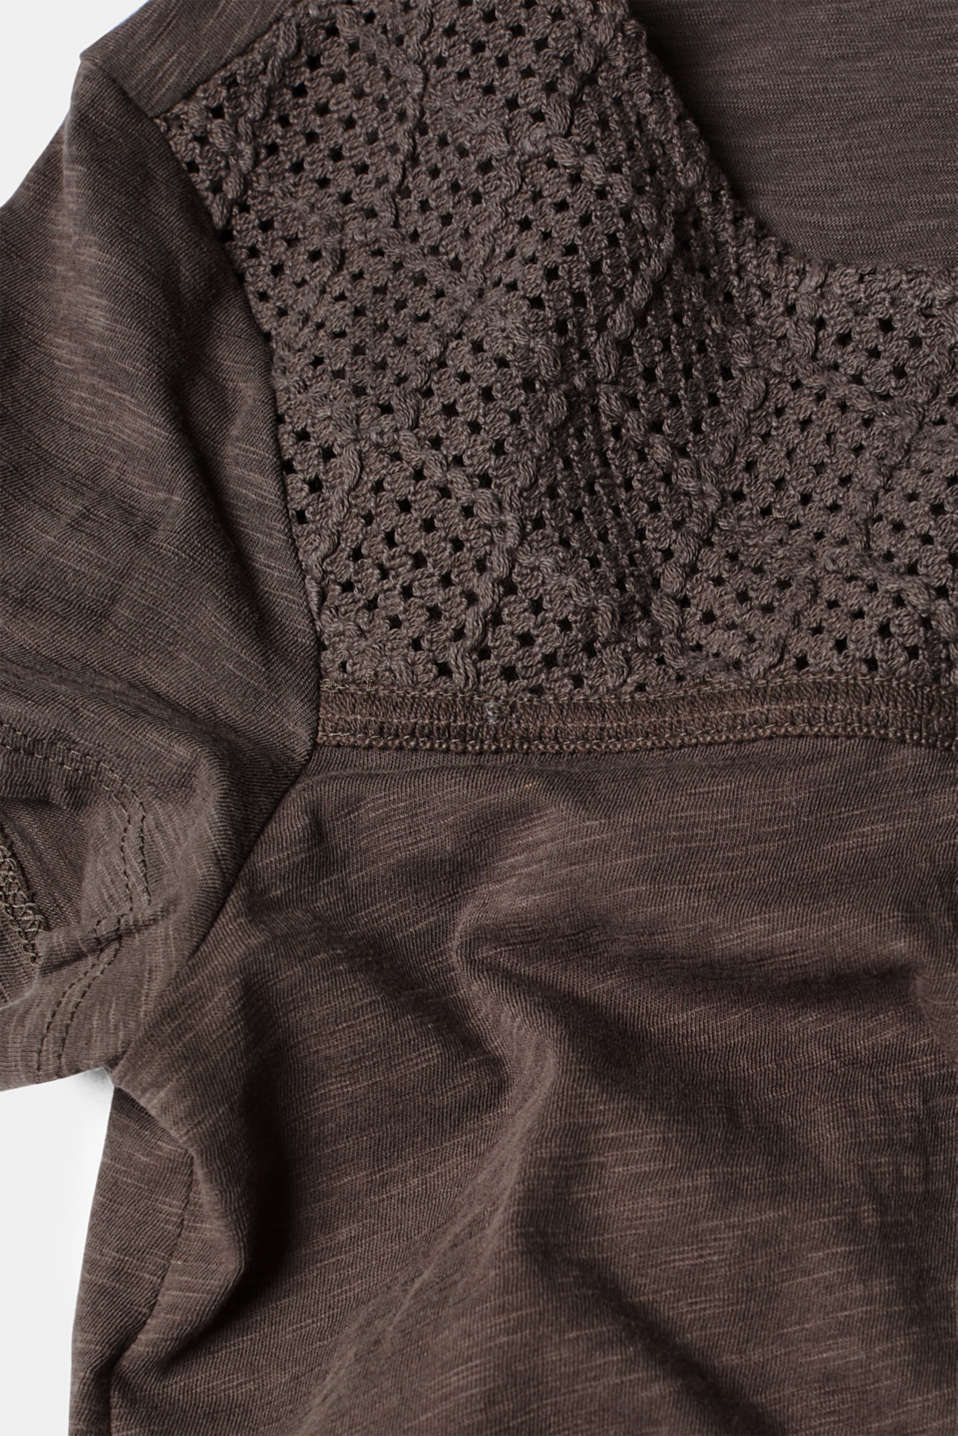 Slub top with crocheted lace, 100% cotton, DARK GREY, detail image number 4